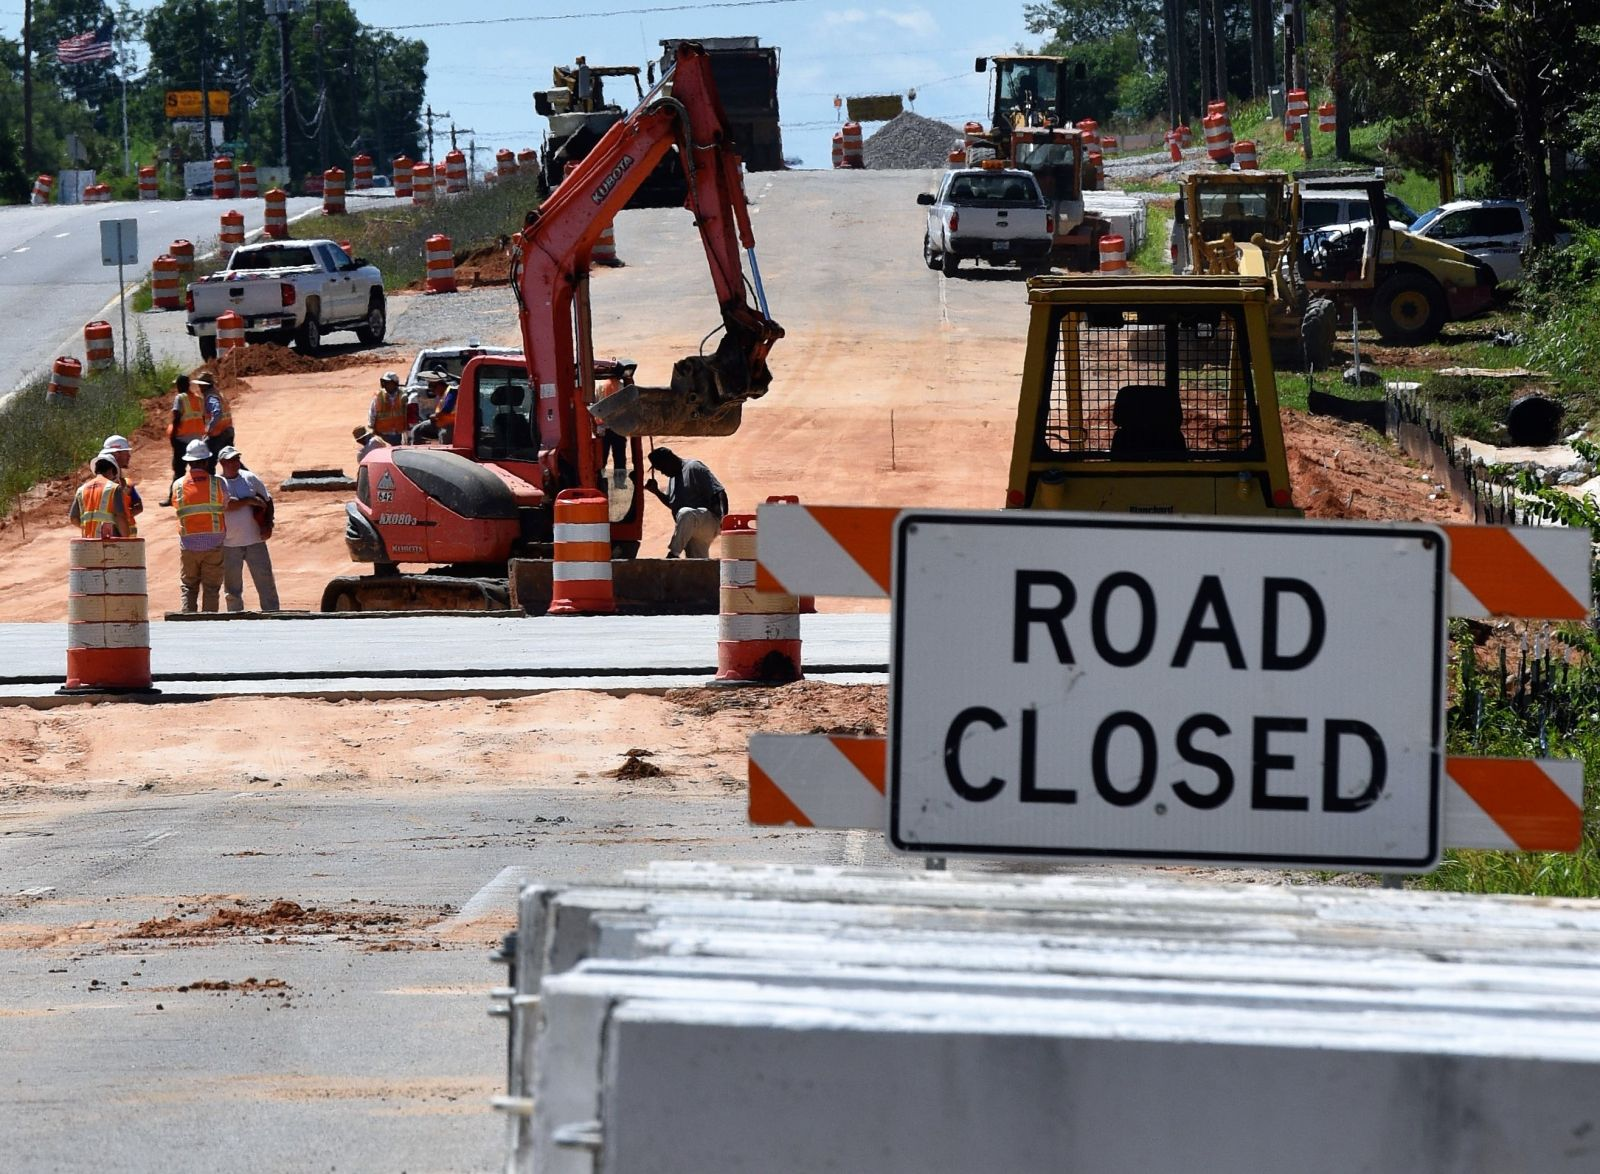 Workers make progress on rebuilding a stretch of U.S. 378 in Richland County. (Photo/Chuck Crumbo)